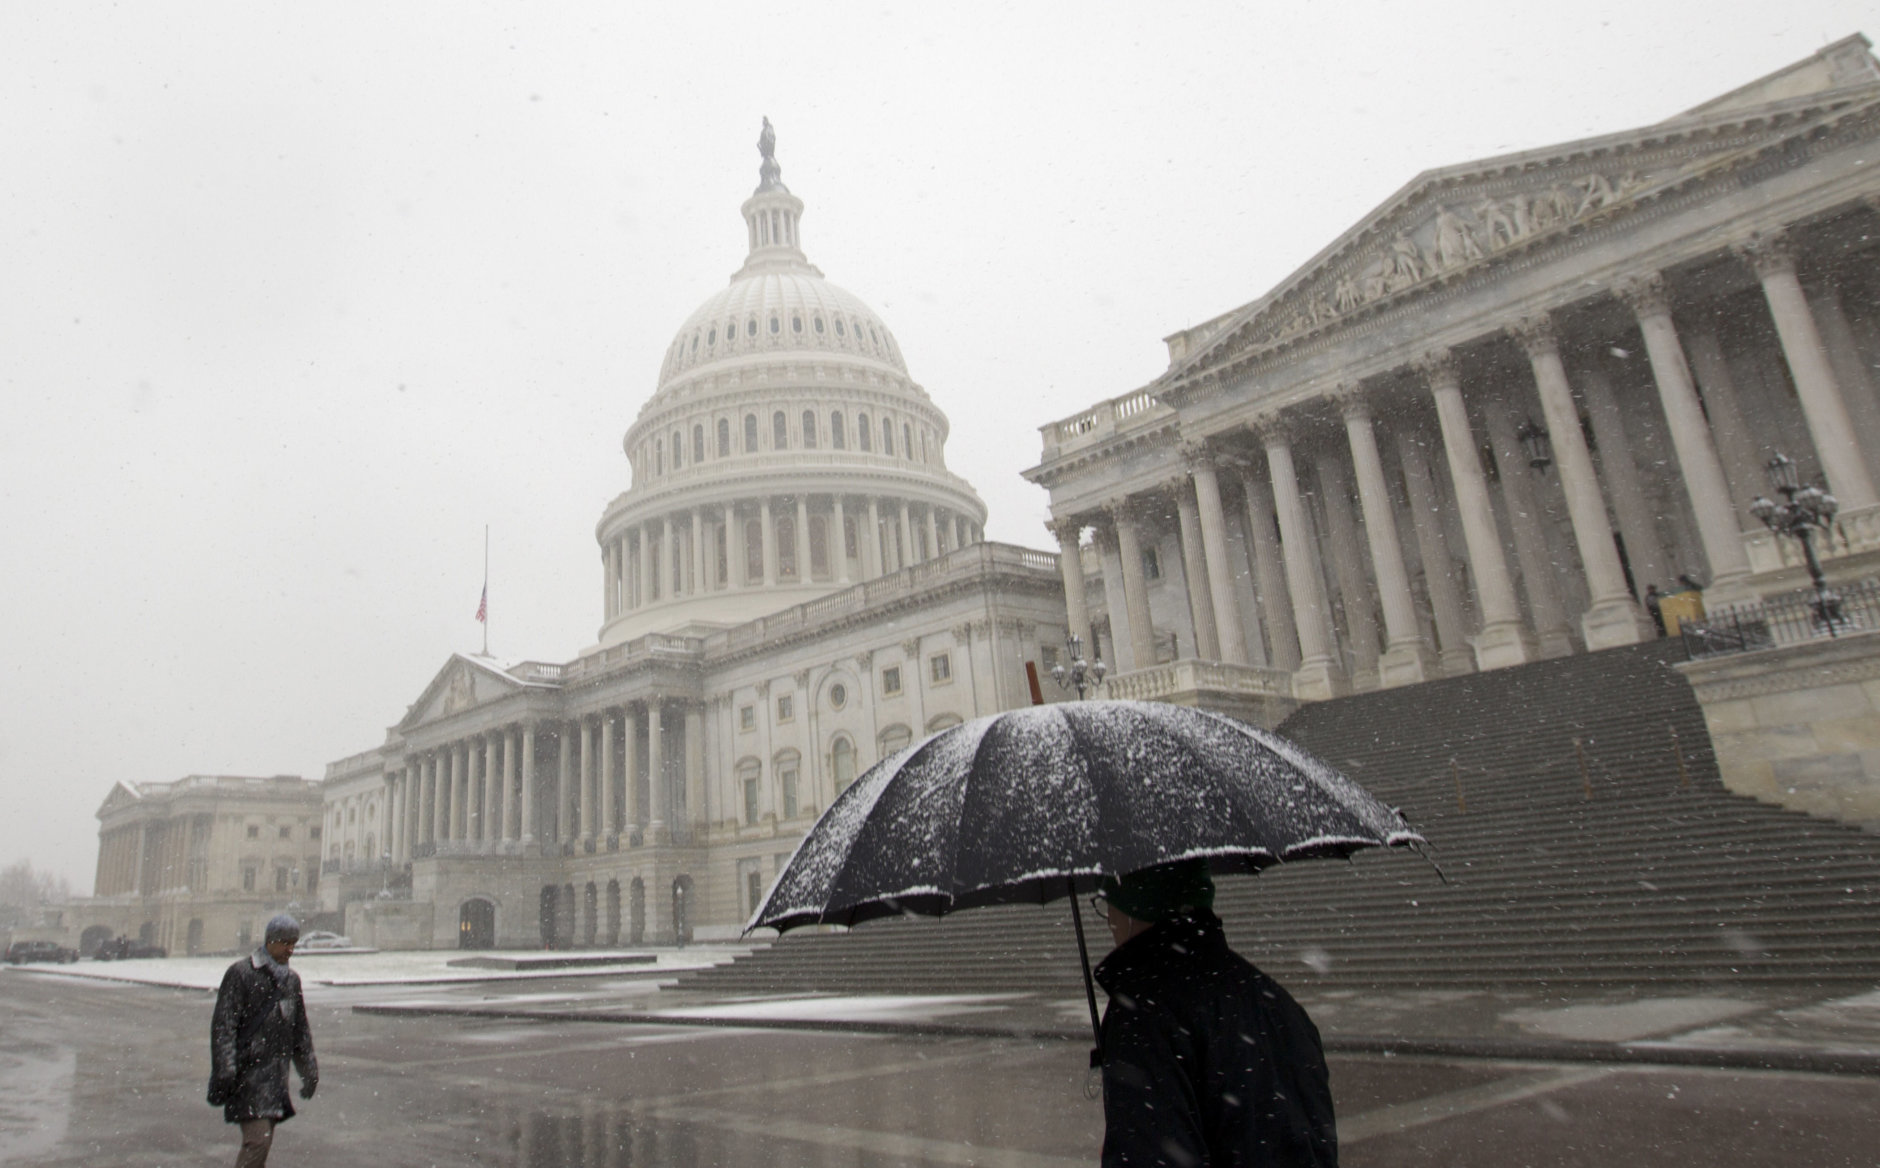 Pedestrians walk under a snow fall outside of U.S. Capitol building, Wednesday, March 21, 2018, in Washington.The storm shut down federal offices in the D.C. area, closed schools and stopped two major commuter rail systems from operating. (AP Photo/Jose Luis Magana)